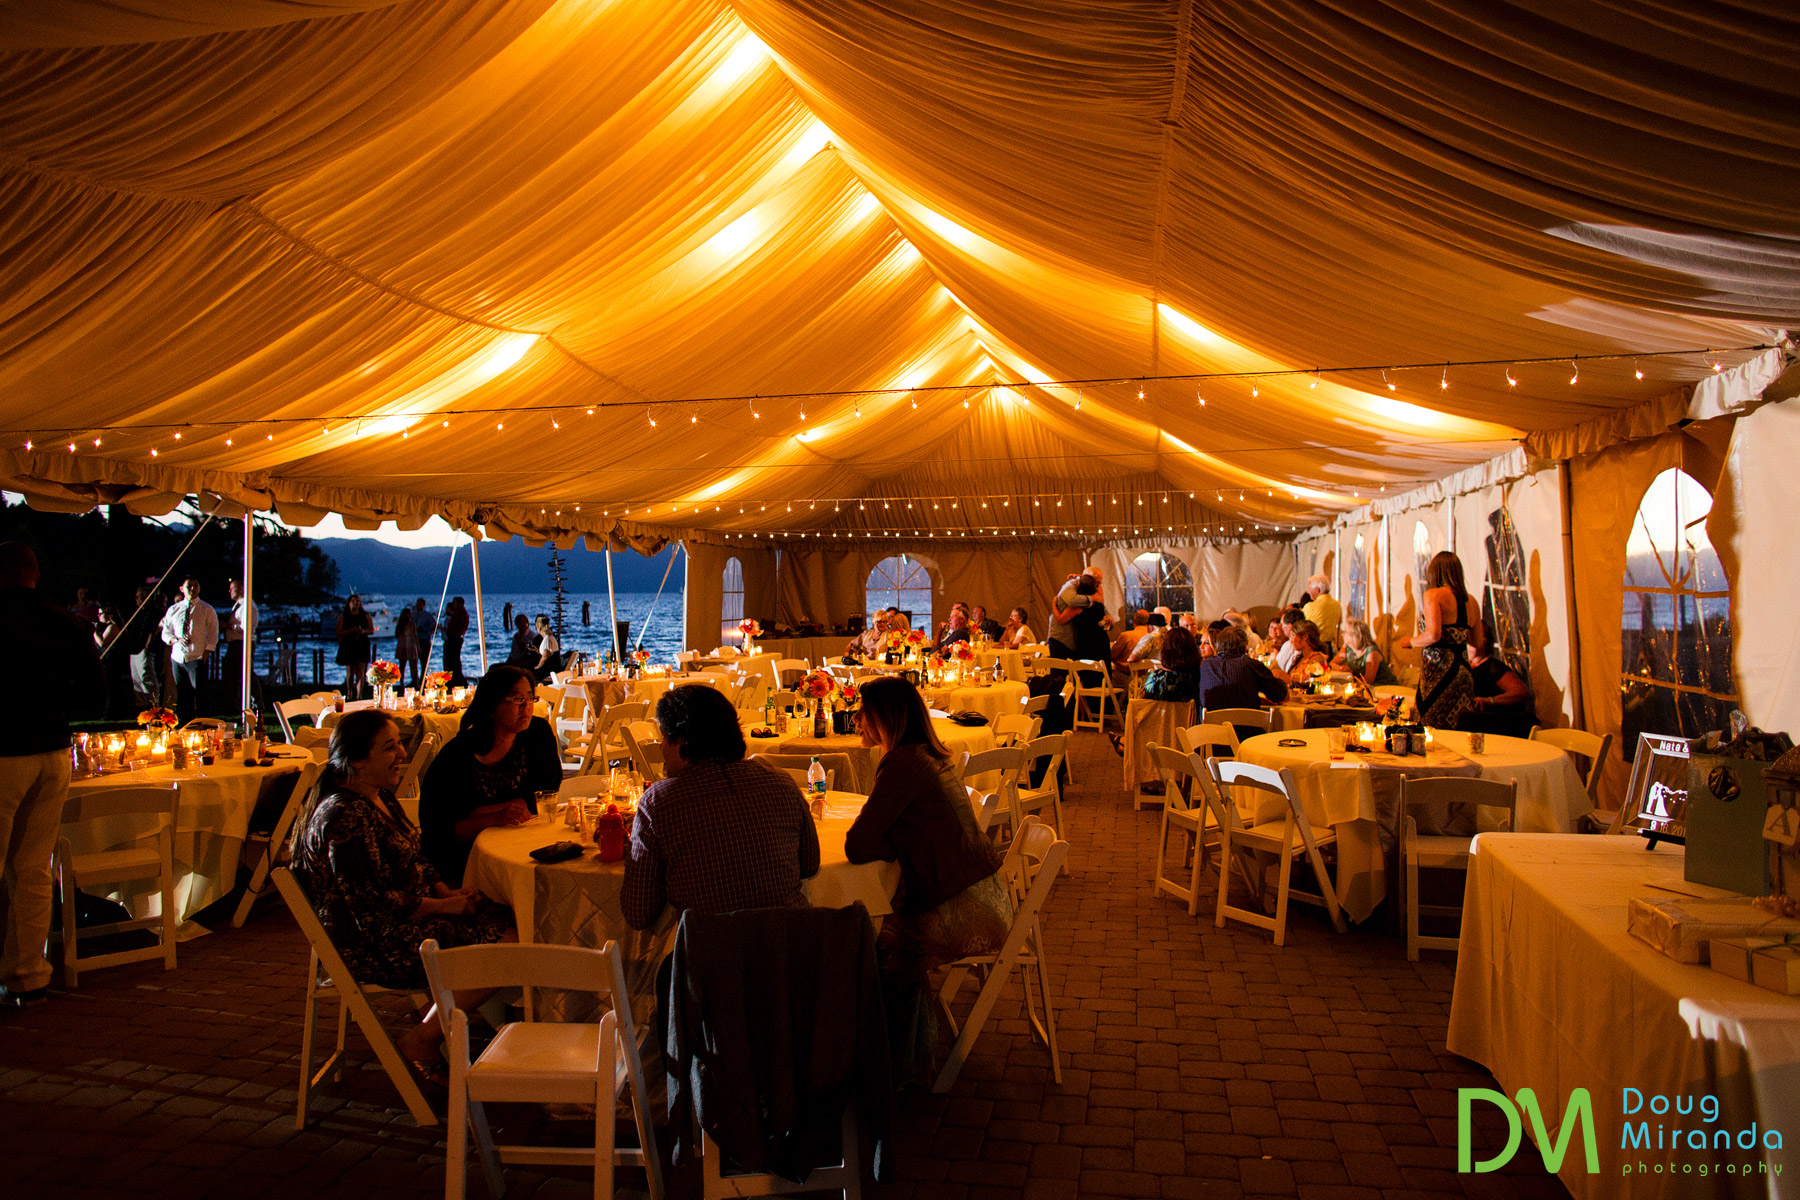 zephyr cove resort wedding tent